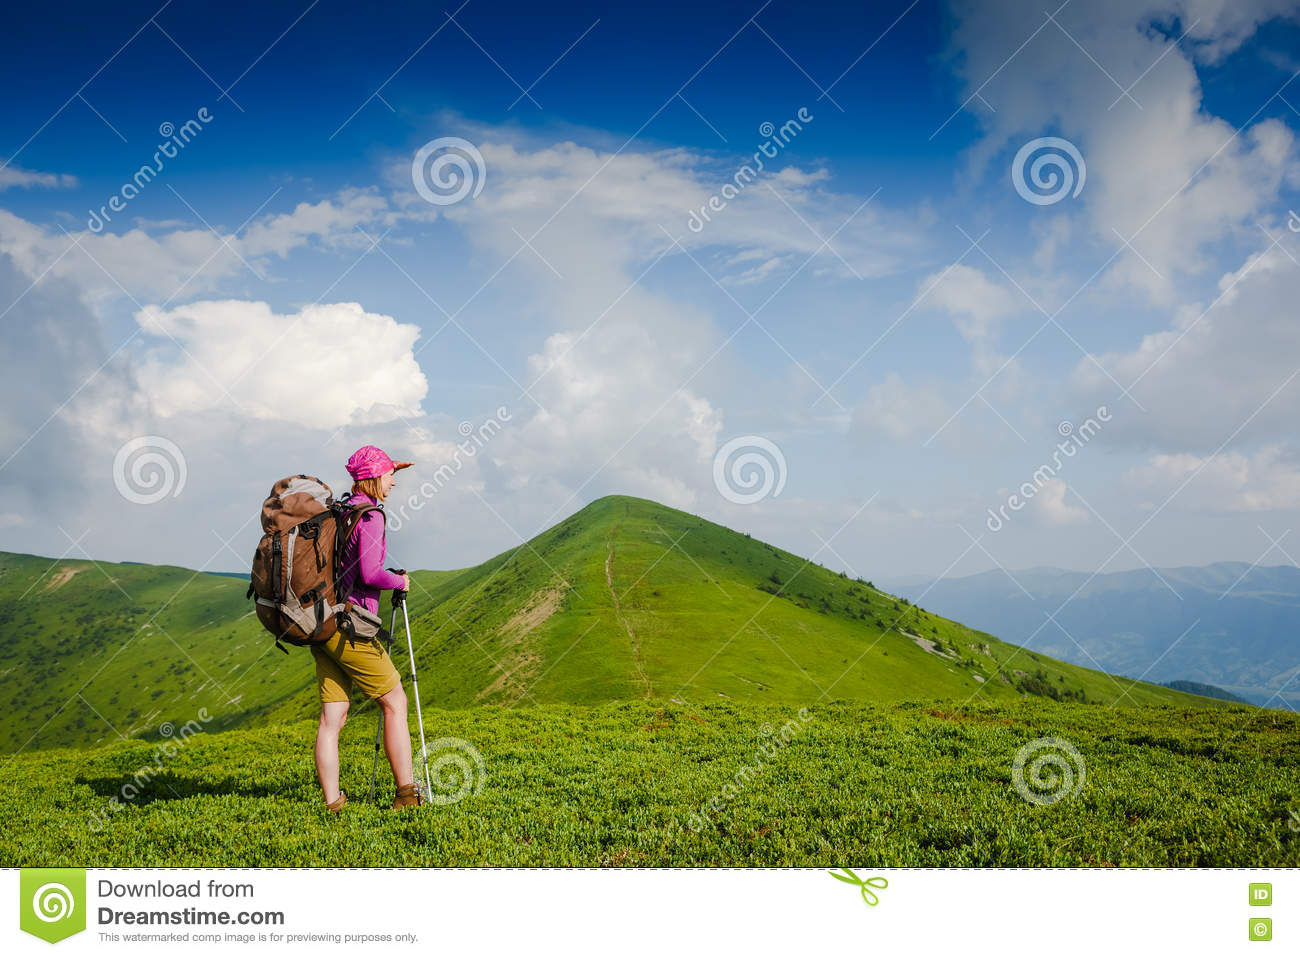 Woman backpacker in the mountains enjoy the view